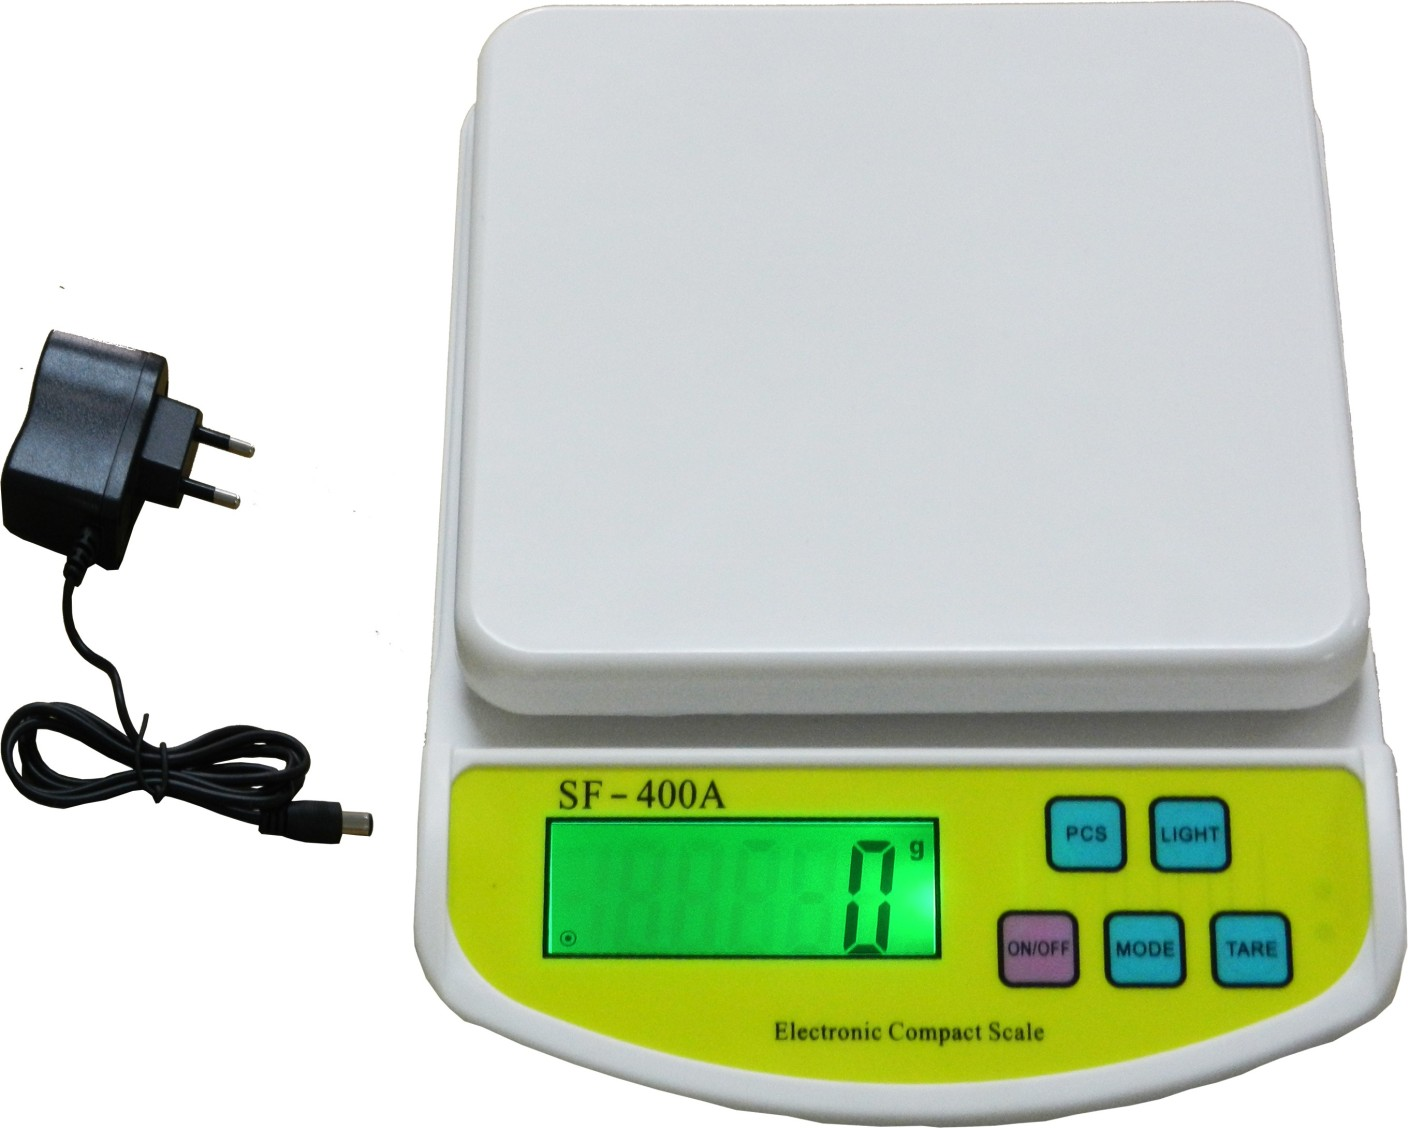 Small Kitchen Weighing Scales Virgo Digital Kitchen Multi Purpose 10 Kg Weighing Scale Price In